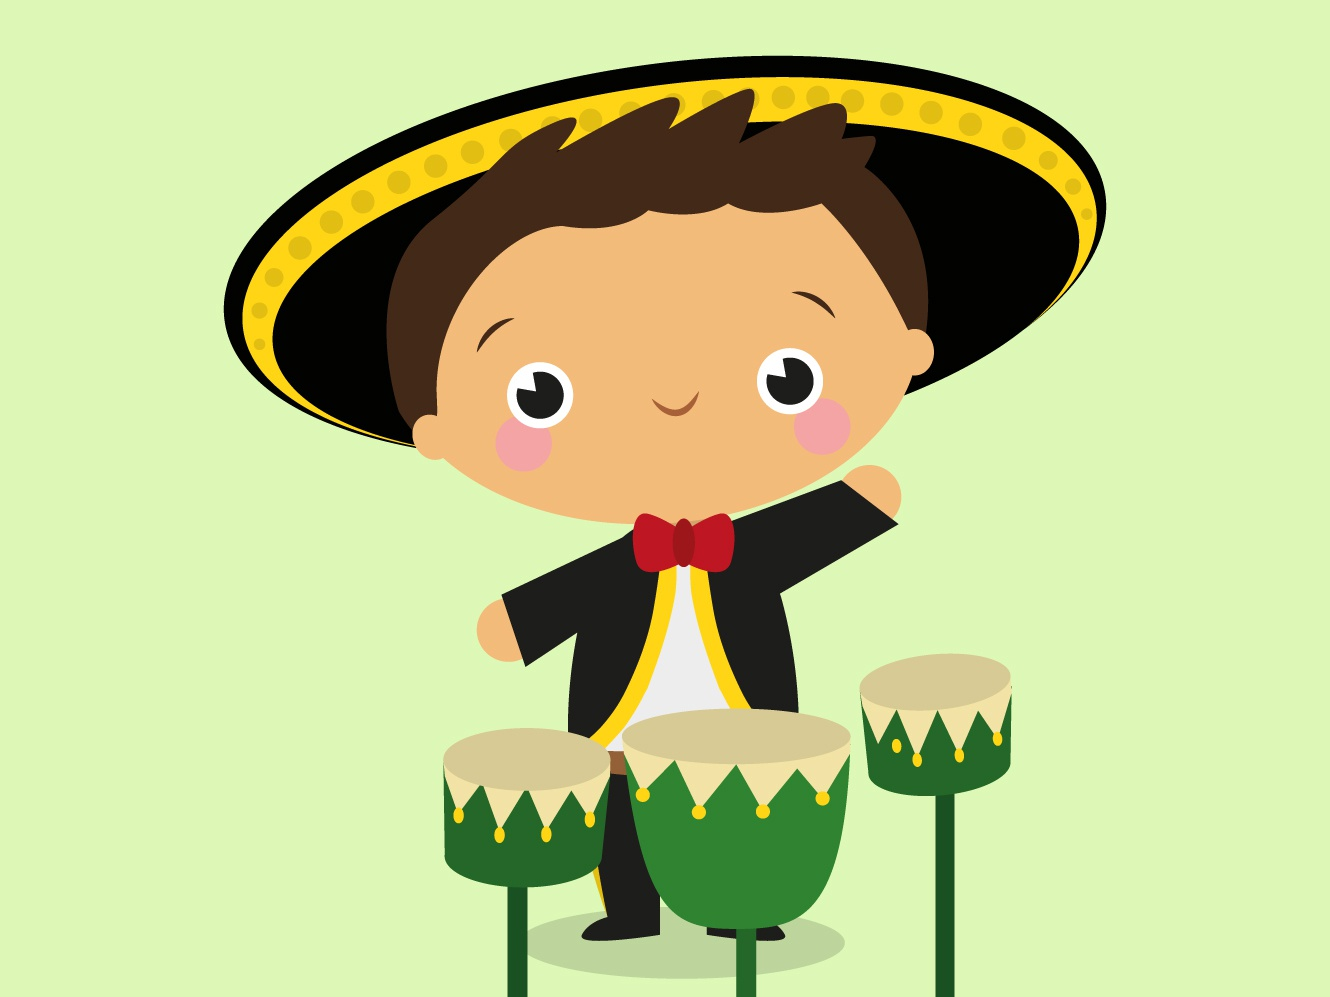 Mariachi music funny cute vector design mexico mariachi mexican children illustration character cartoon illustration